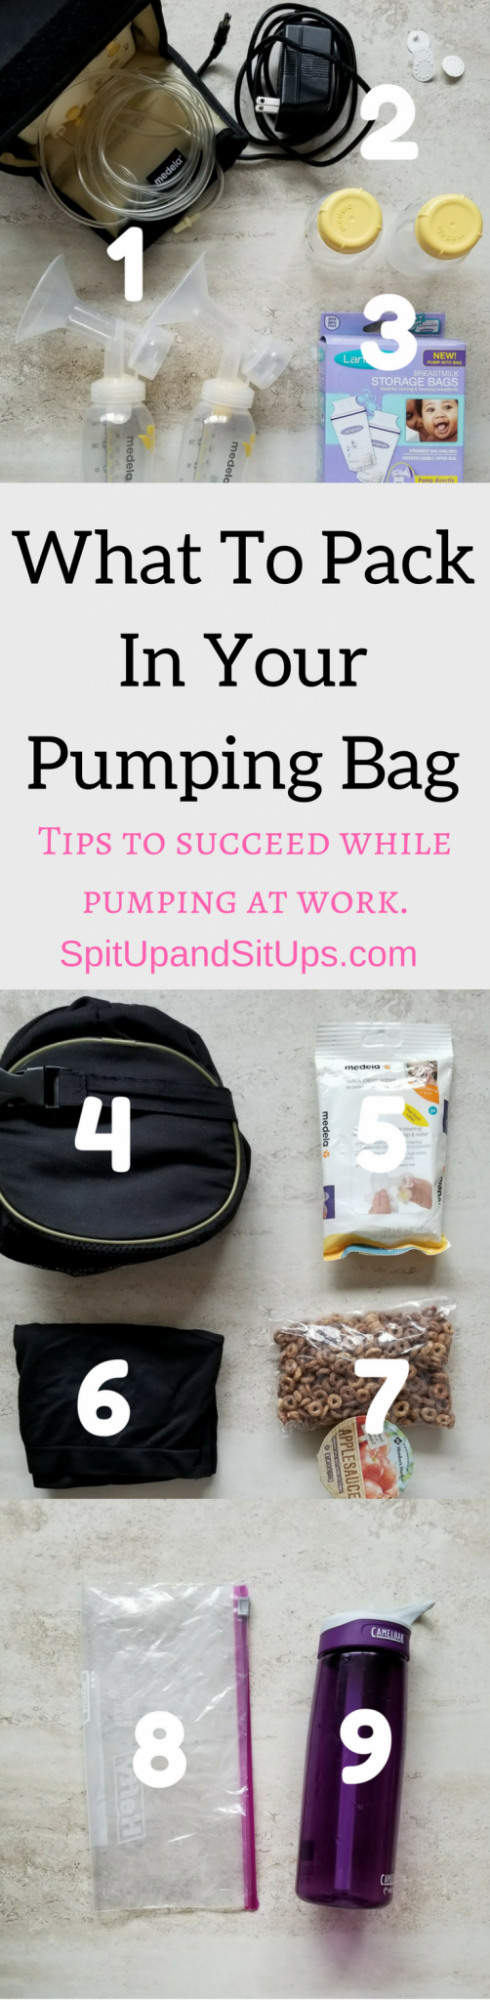 What To Pack In Your Pumping Bag